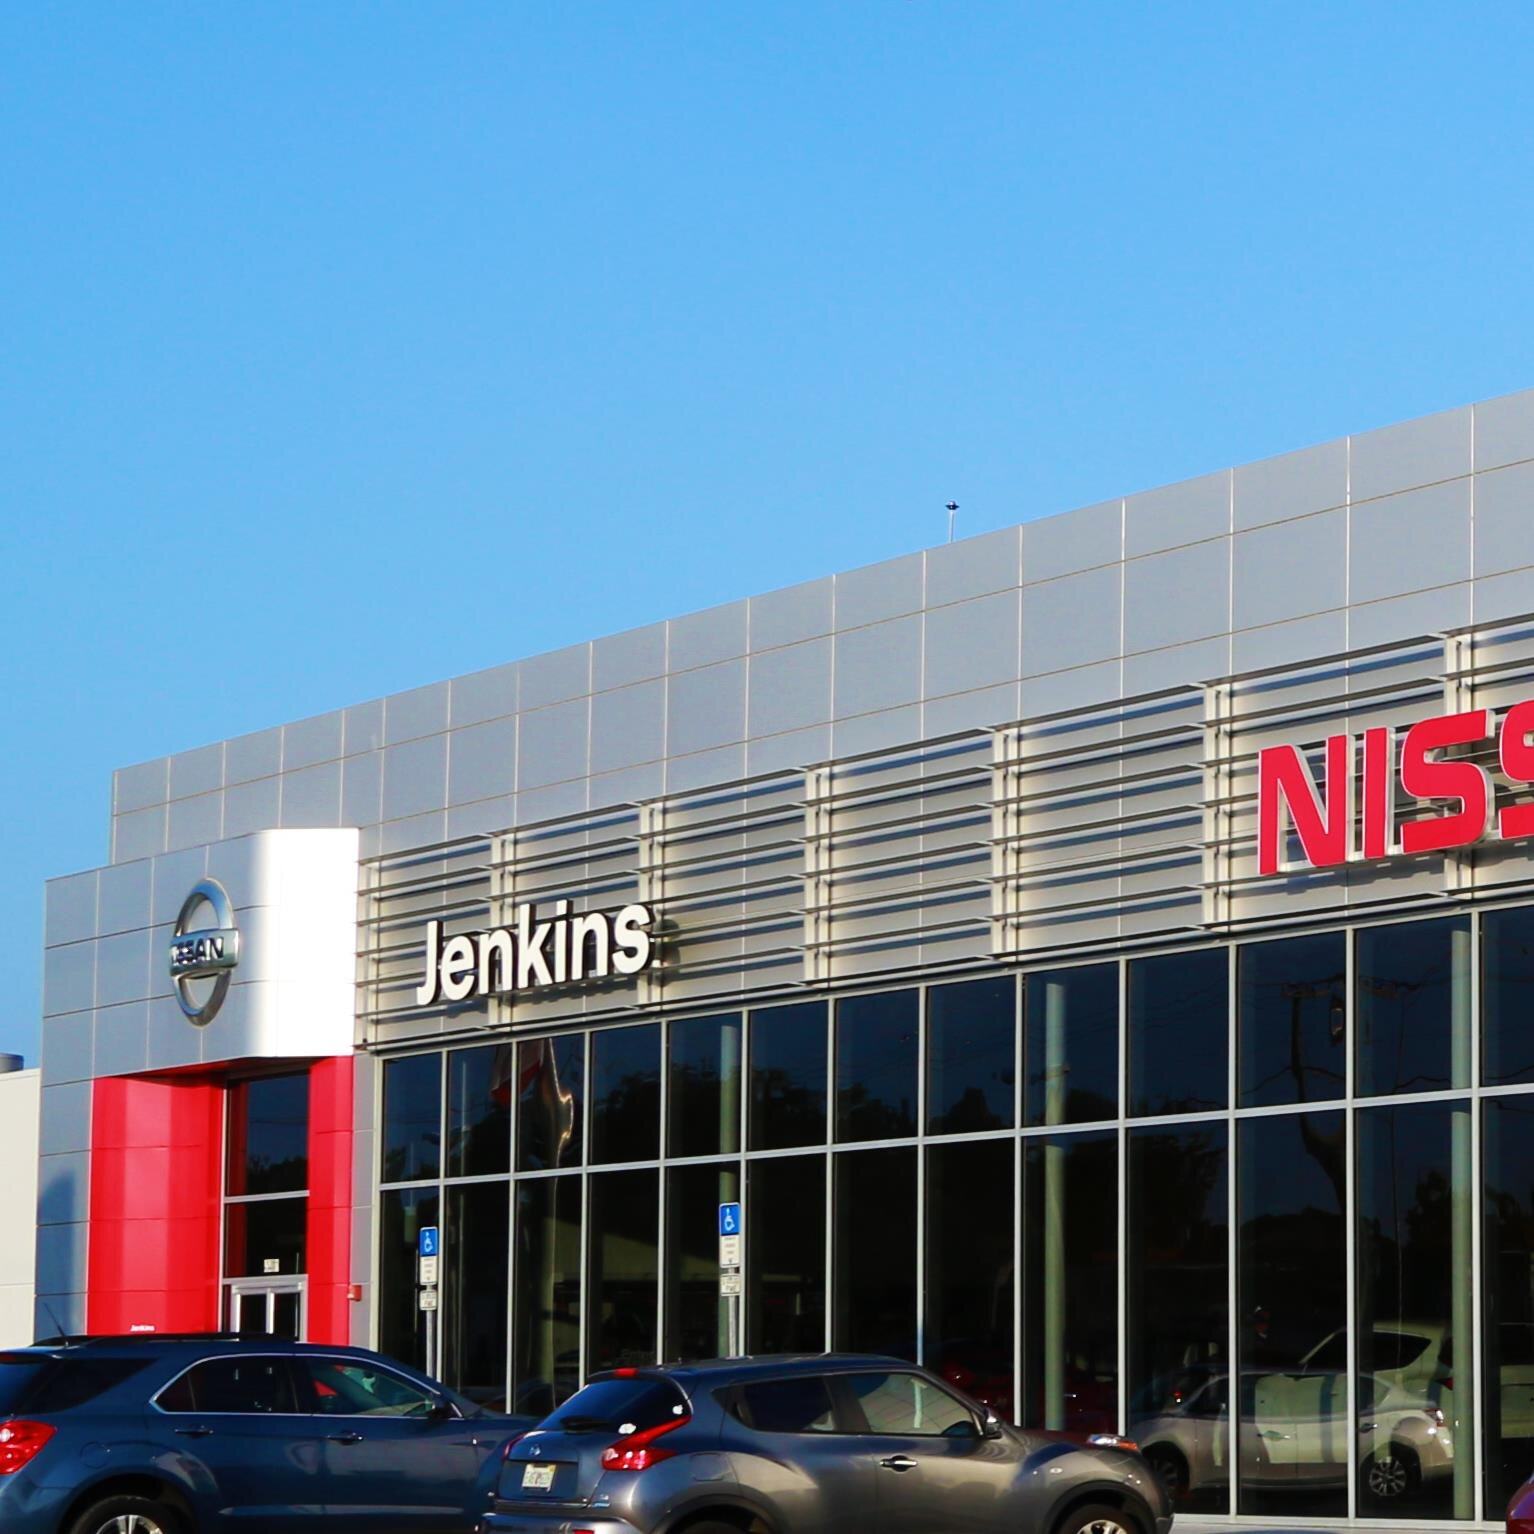 Jenkins Nissan Jenkinsnissan Twitter Our editors have chosen several links from nissanusa.com, gethuman.com and nissan.ca. twitter